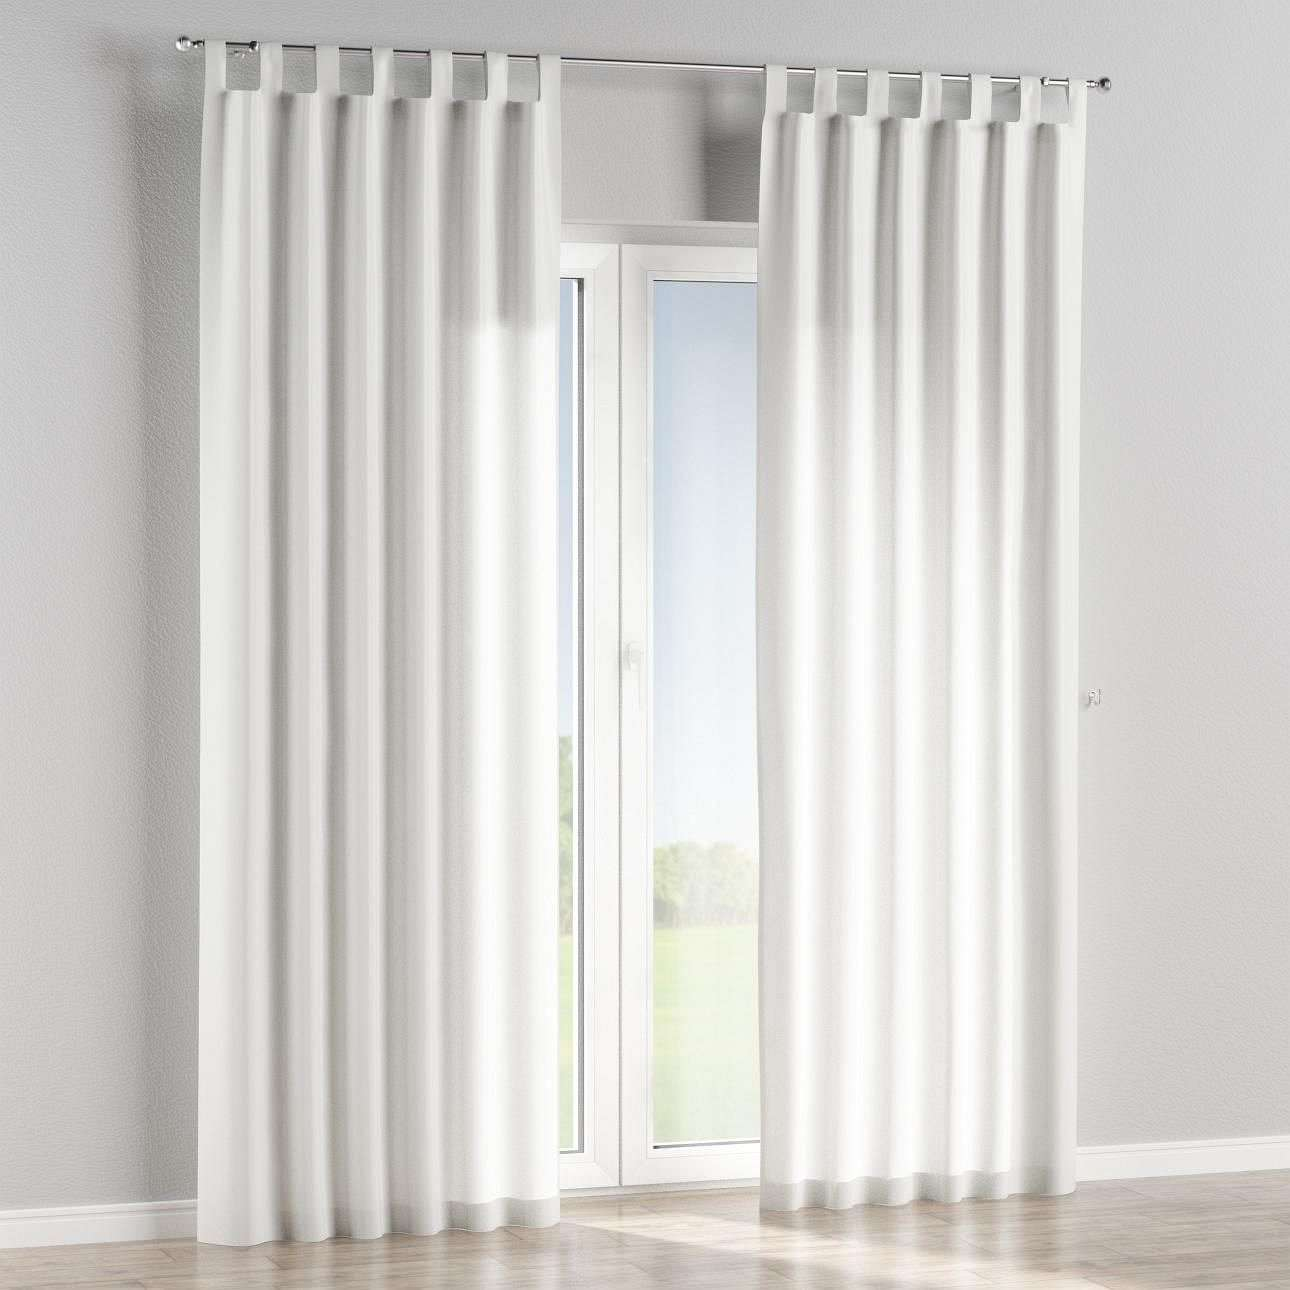 Tab top lined curtains in collection Nordic, fabric: 630-21